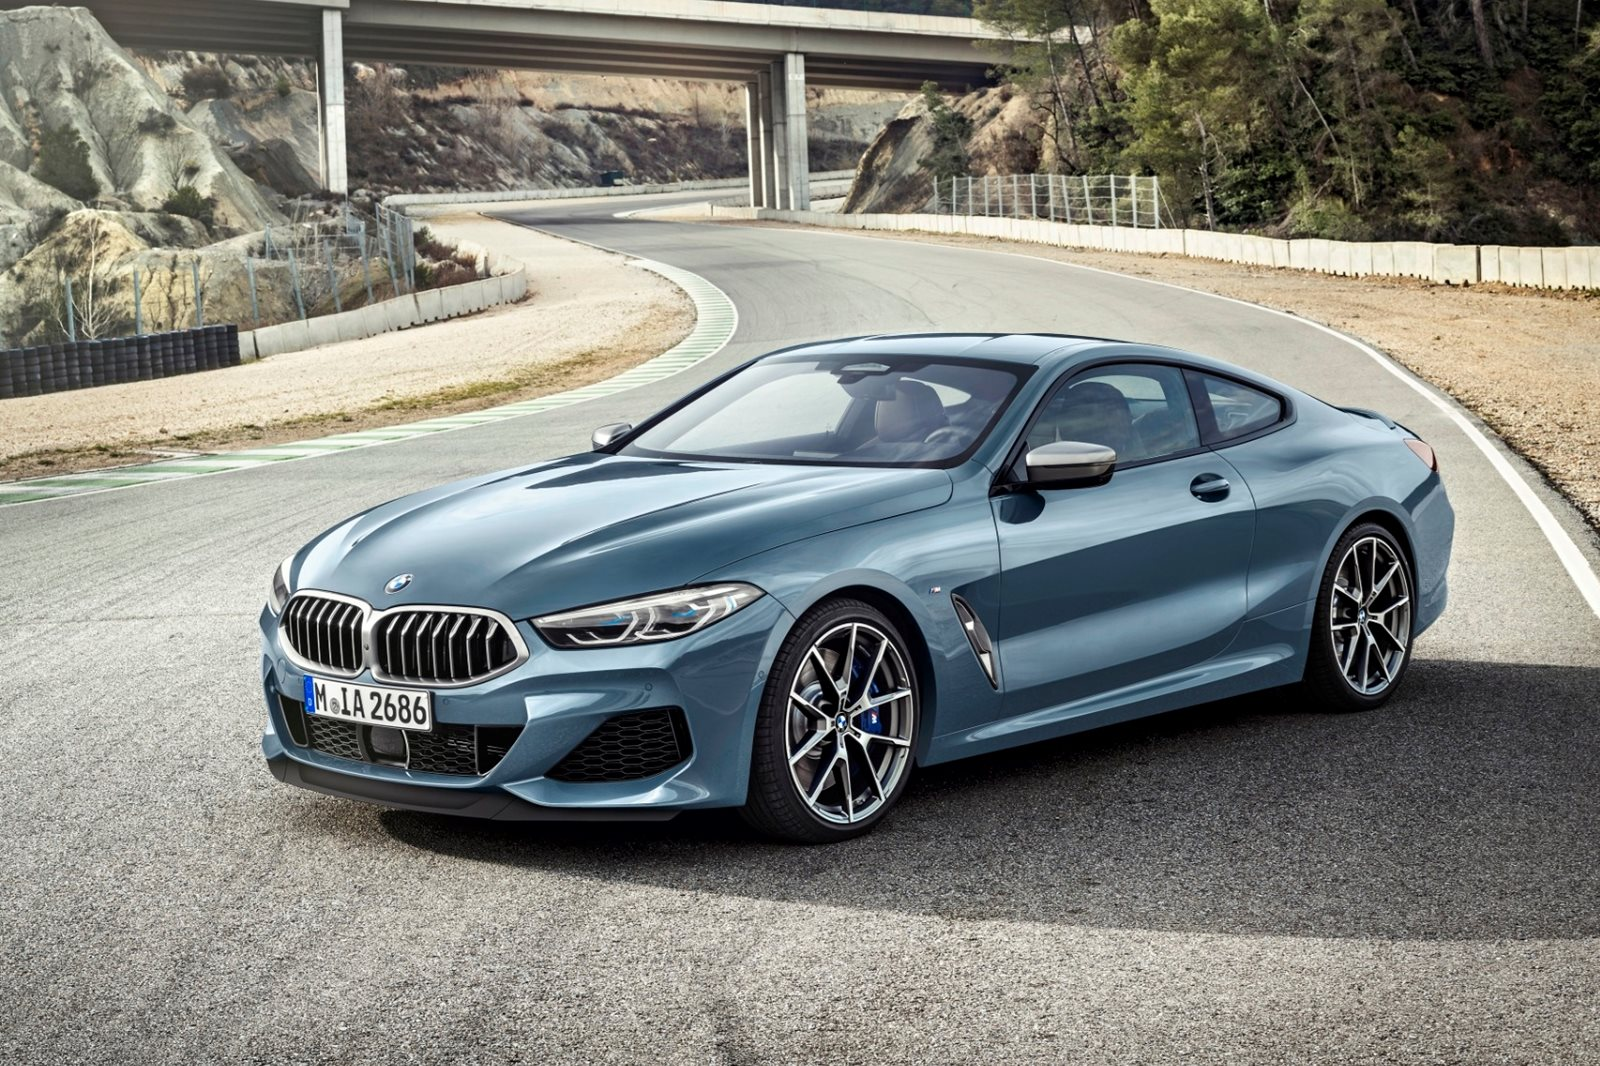 2021 Bmw 8 Series Coupe Review Trims Specs Price New Interior Features Exterior Design And Specifications Carbuzz